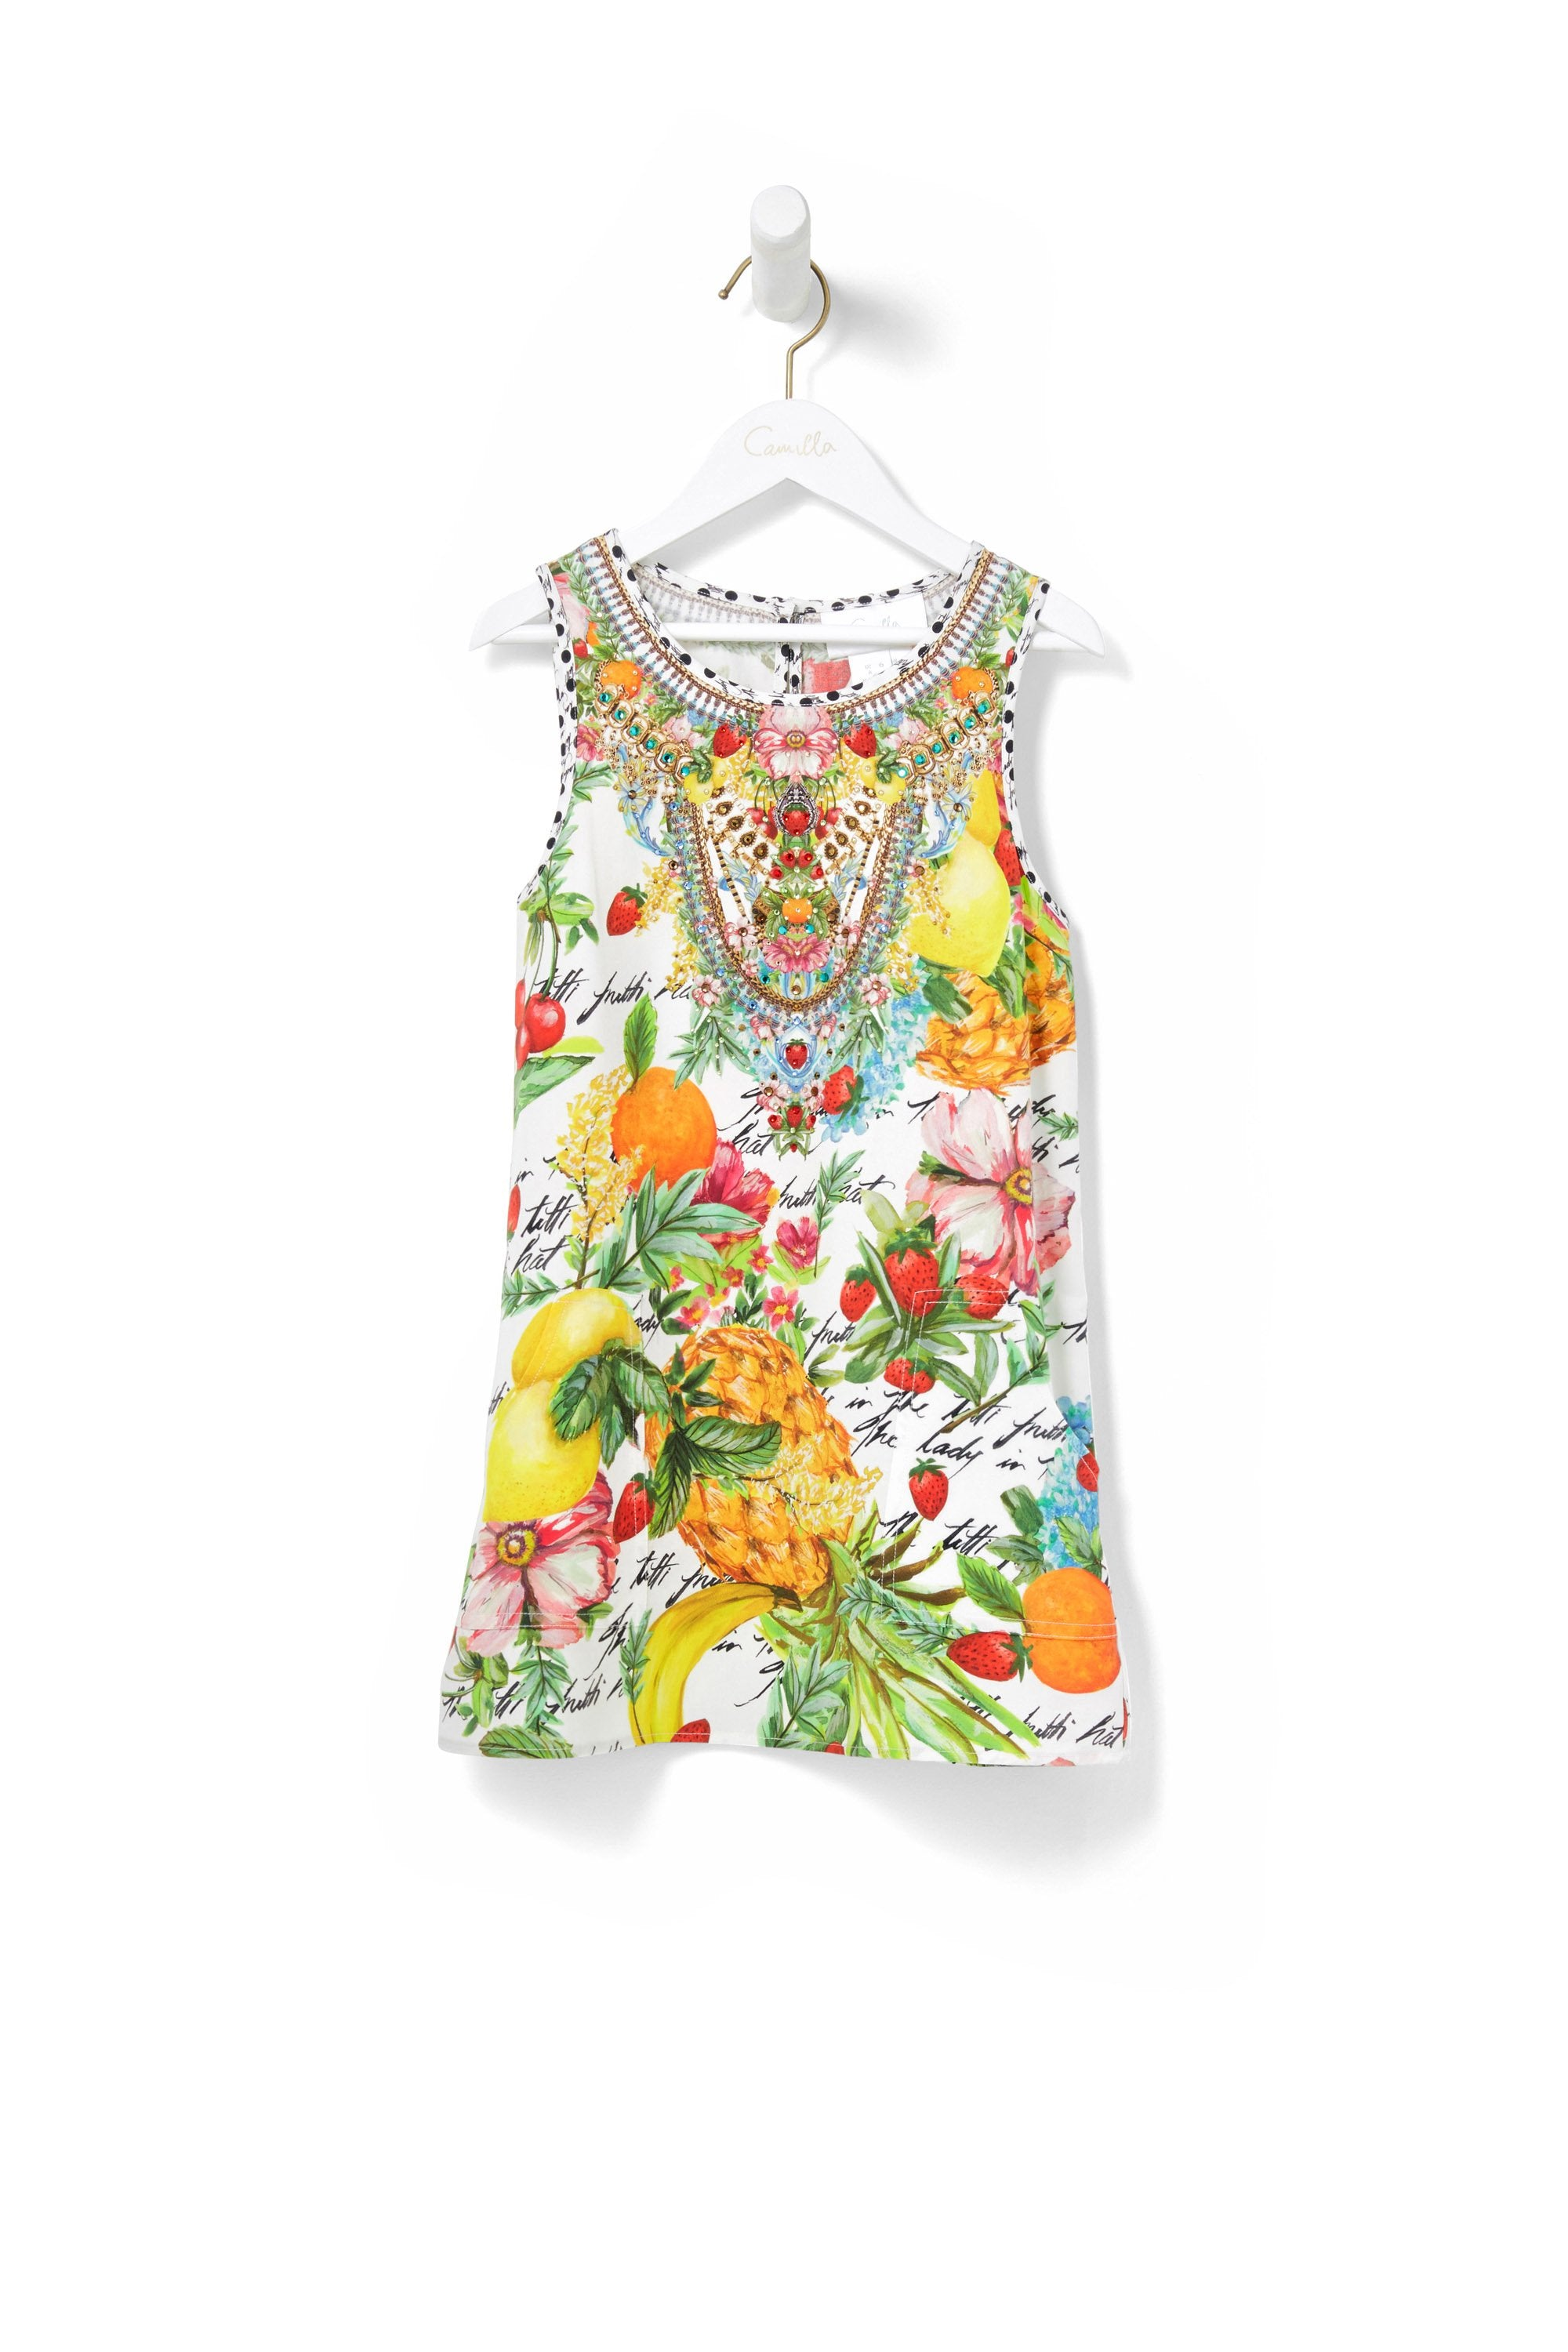 THERES NO PLACE LIKE RIO KIDS TANK DRESS